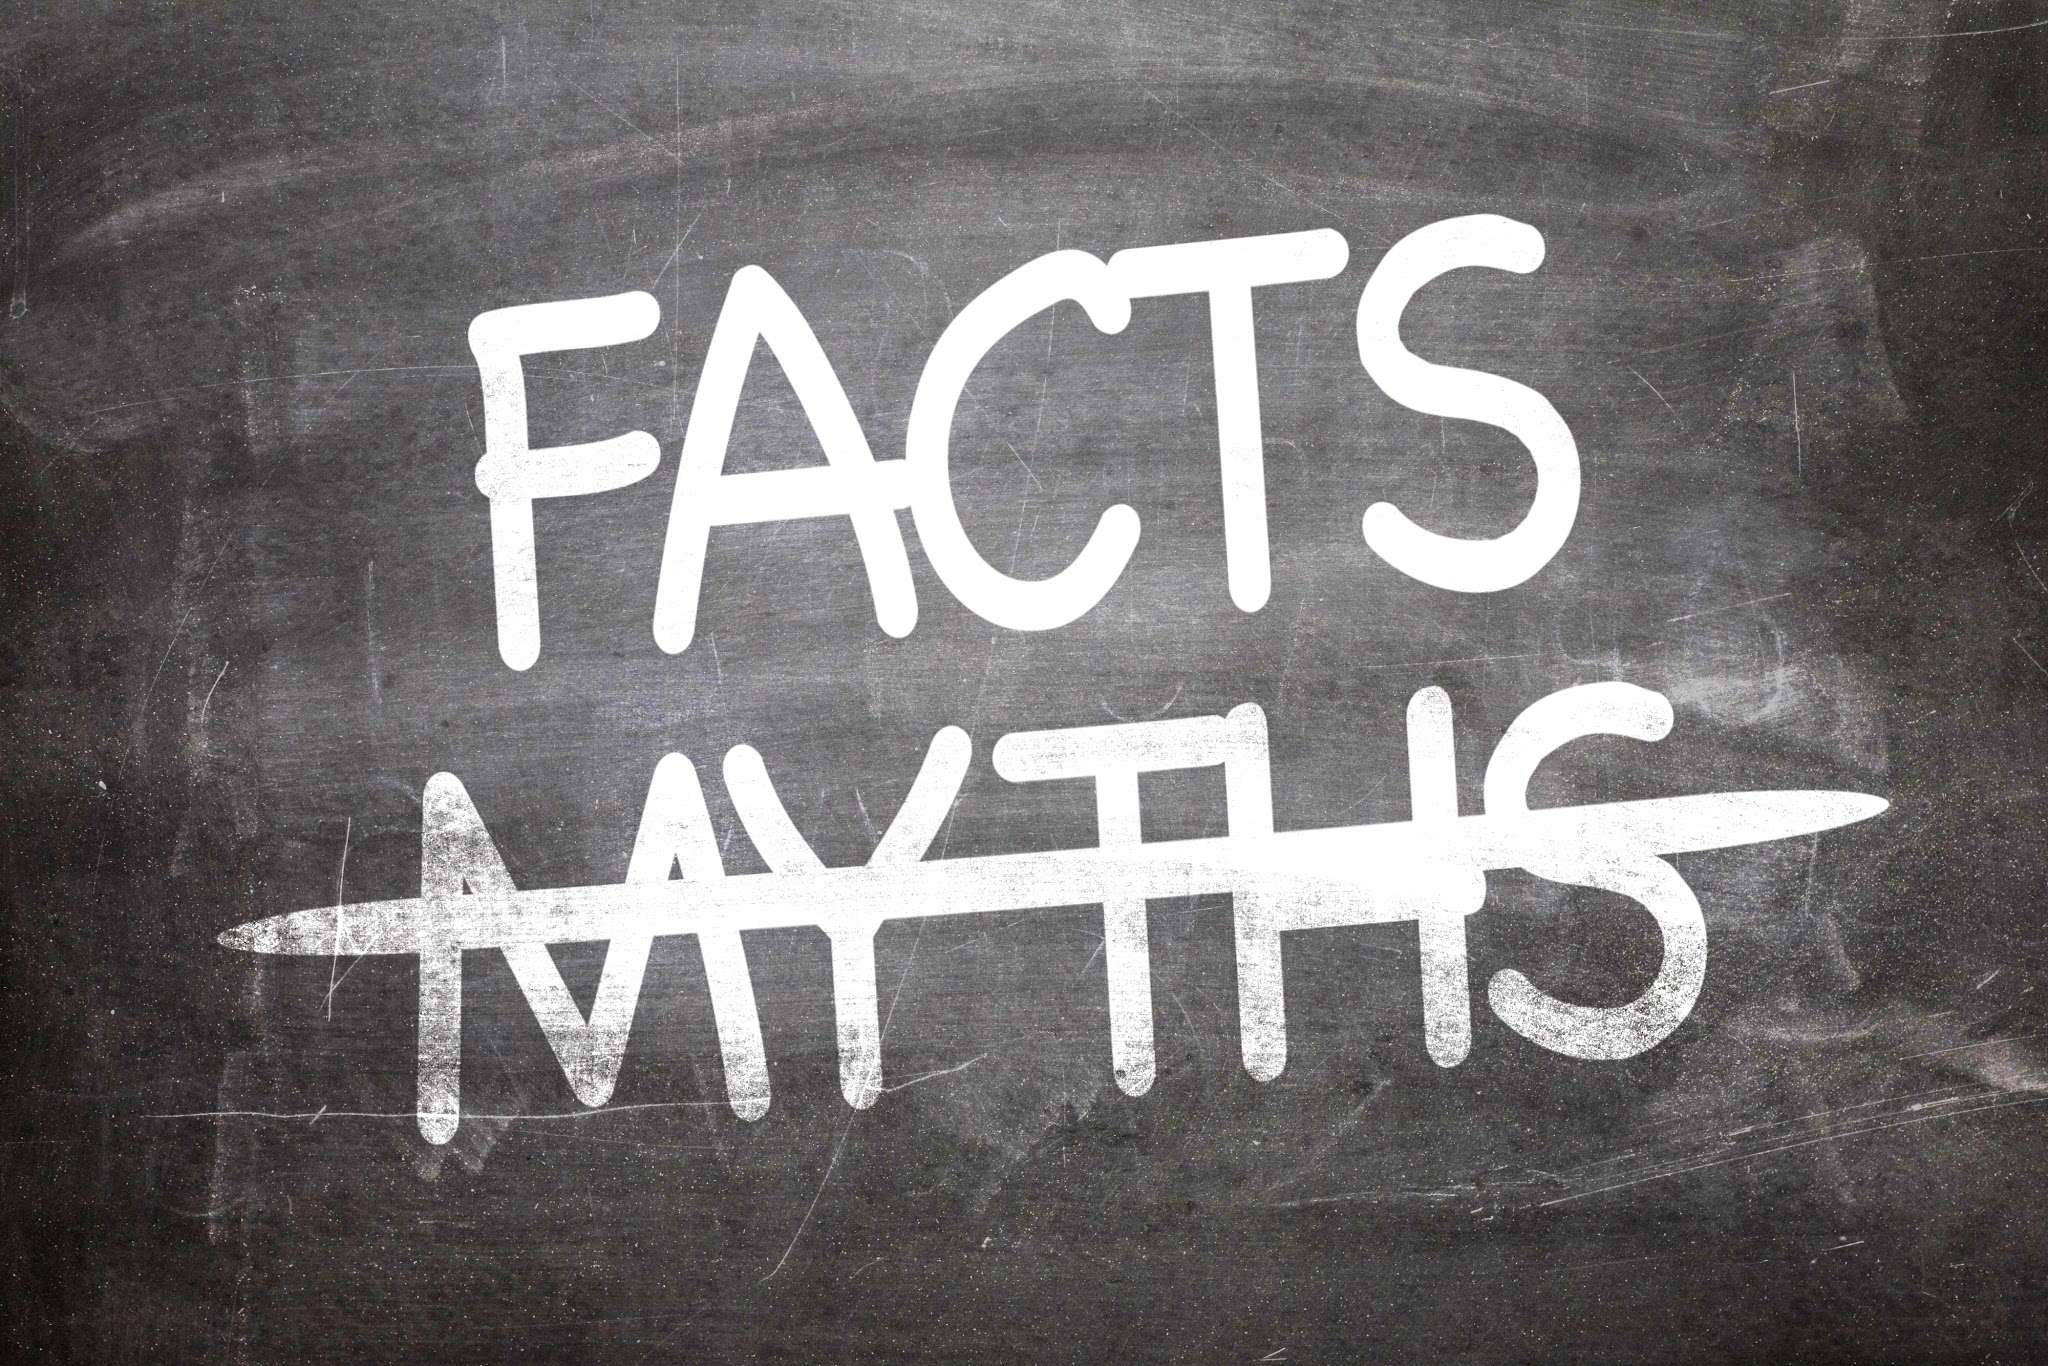 5 myths about investing debunked